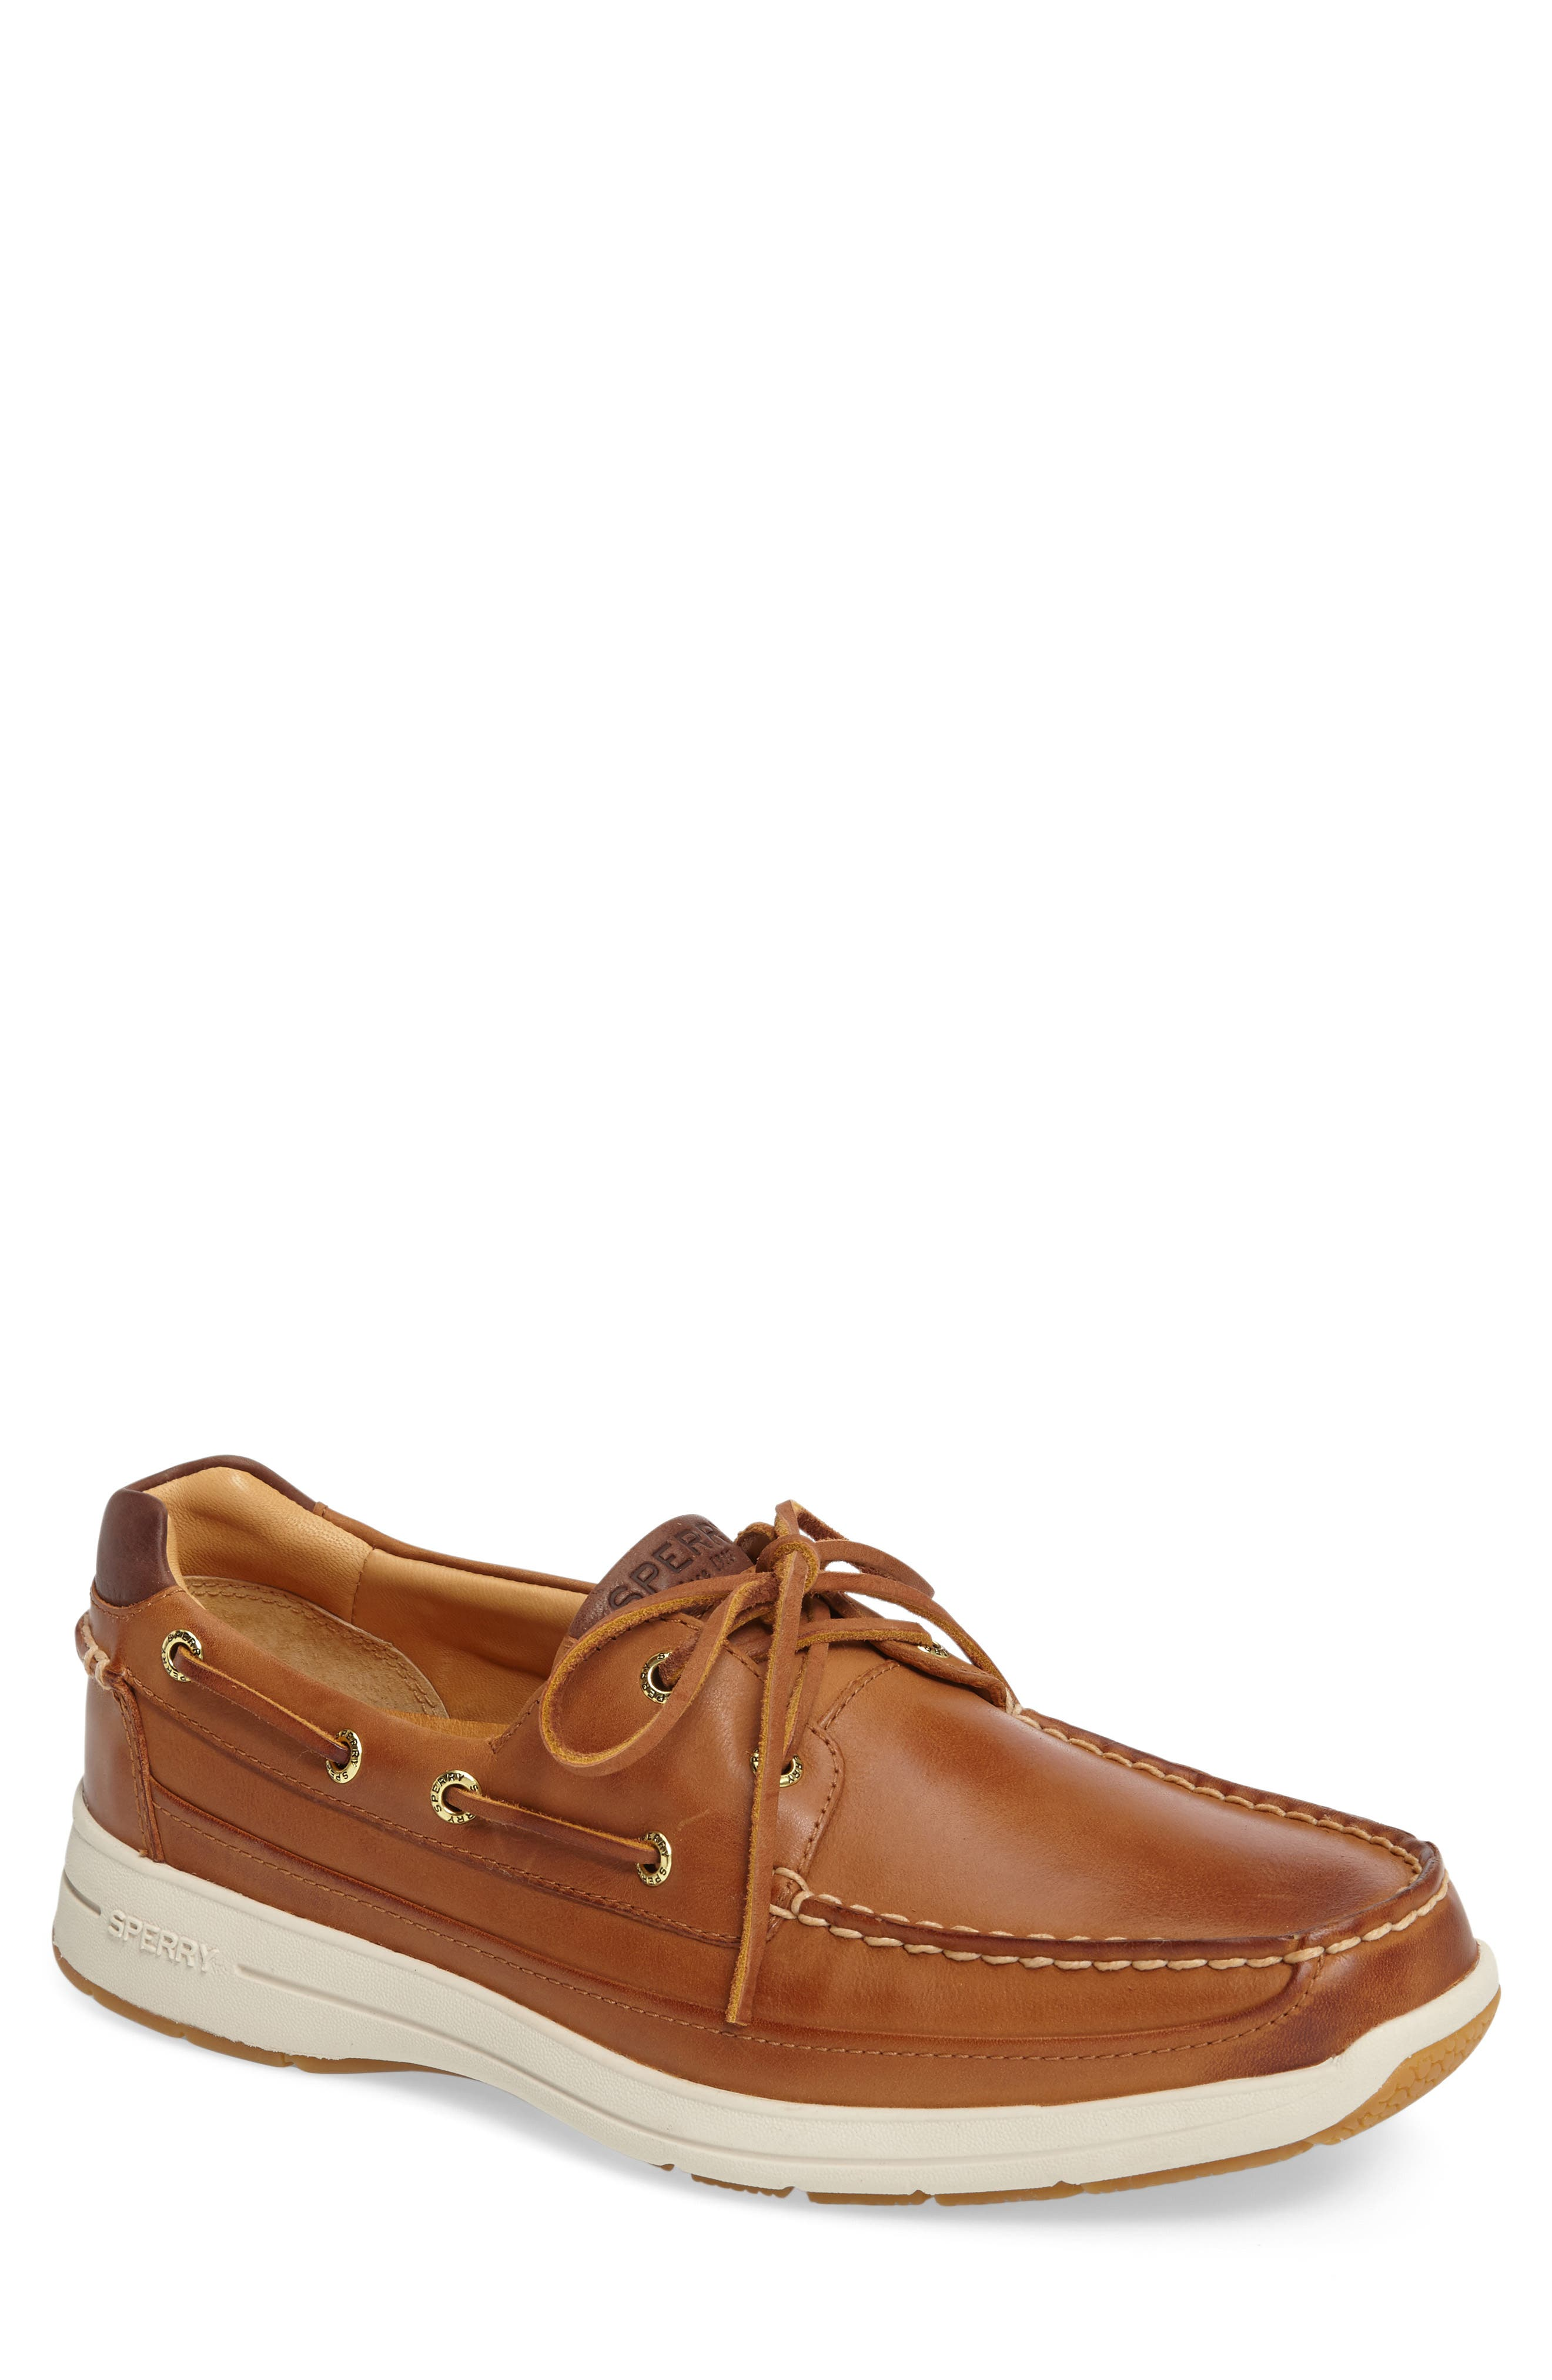 Gold Cup Ultralite Boat Shoe, Main, color, 200